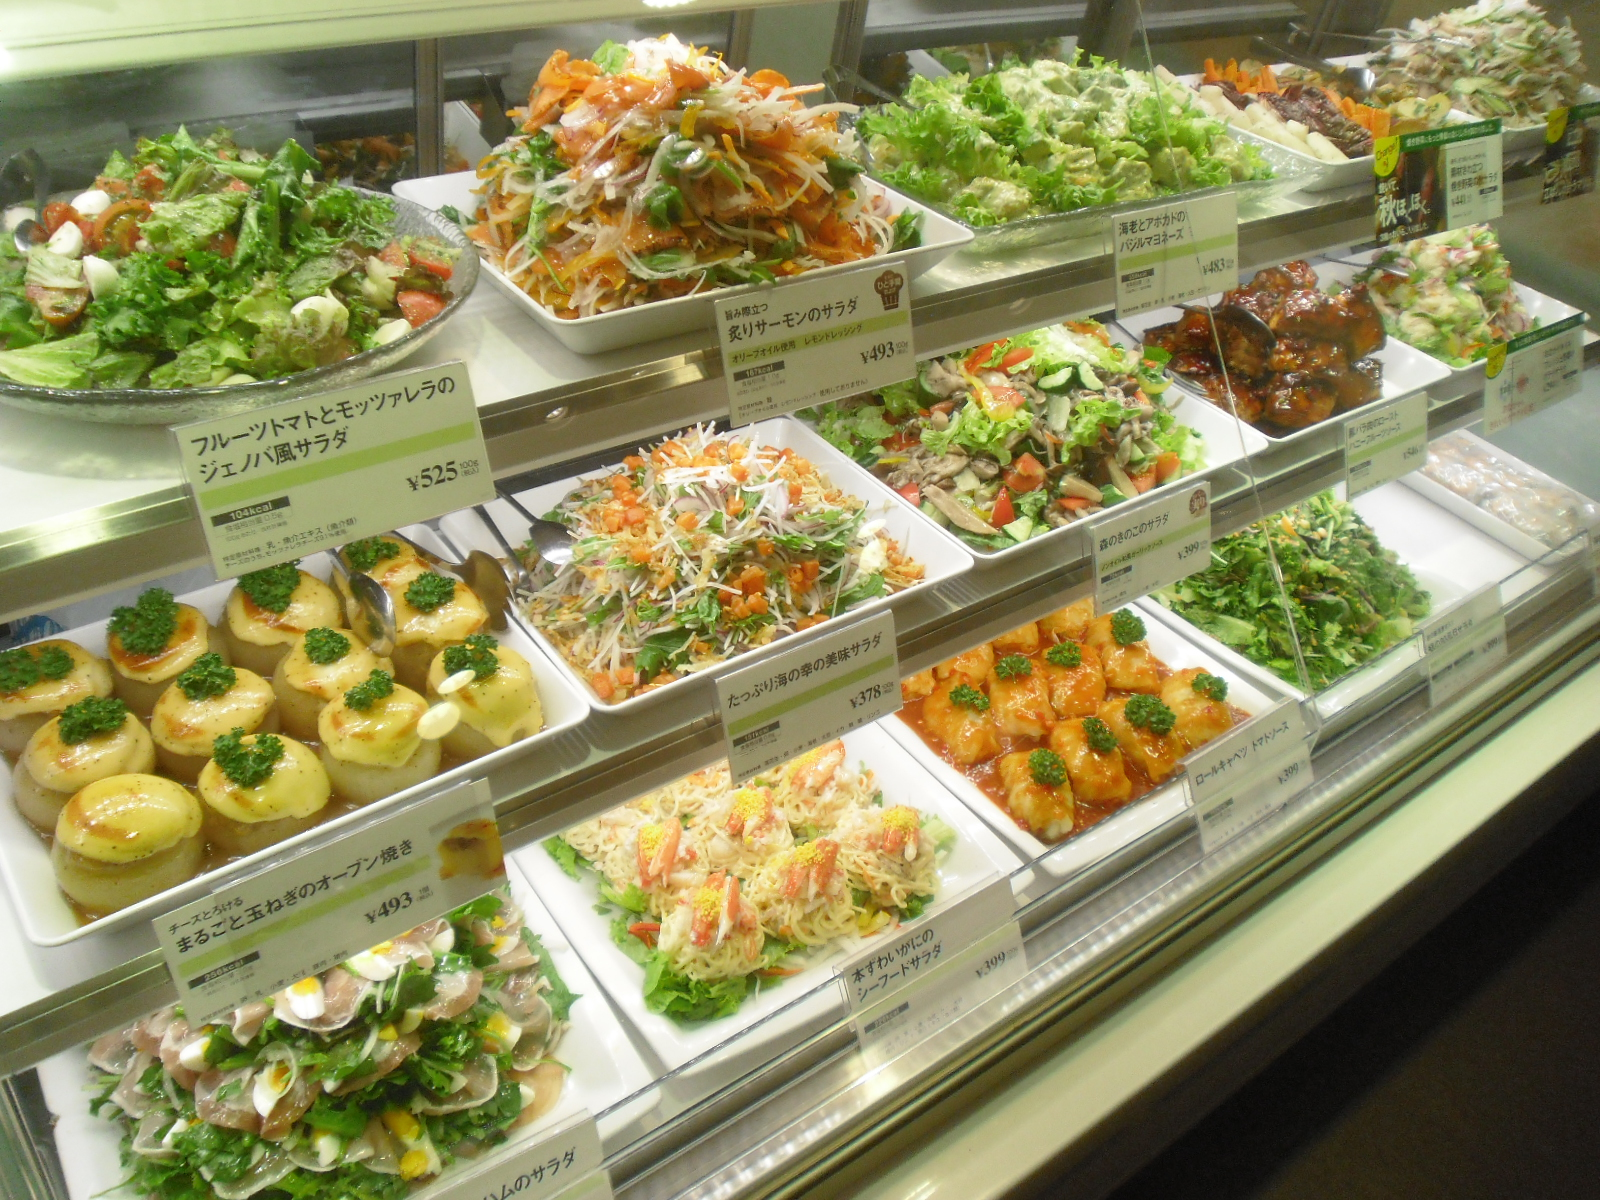 The colorful side dishes in Japan